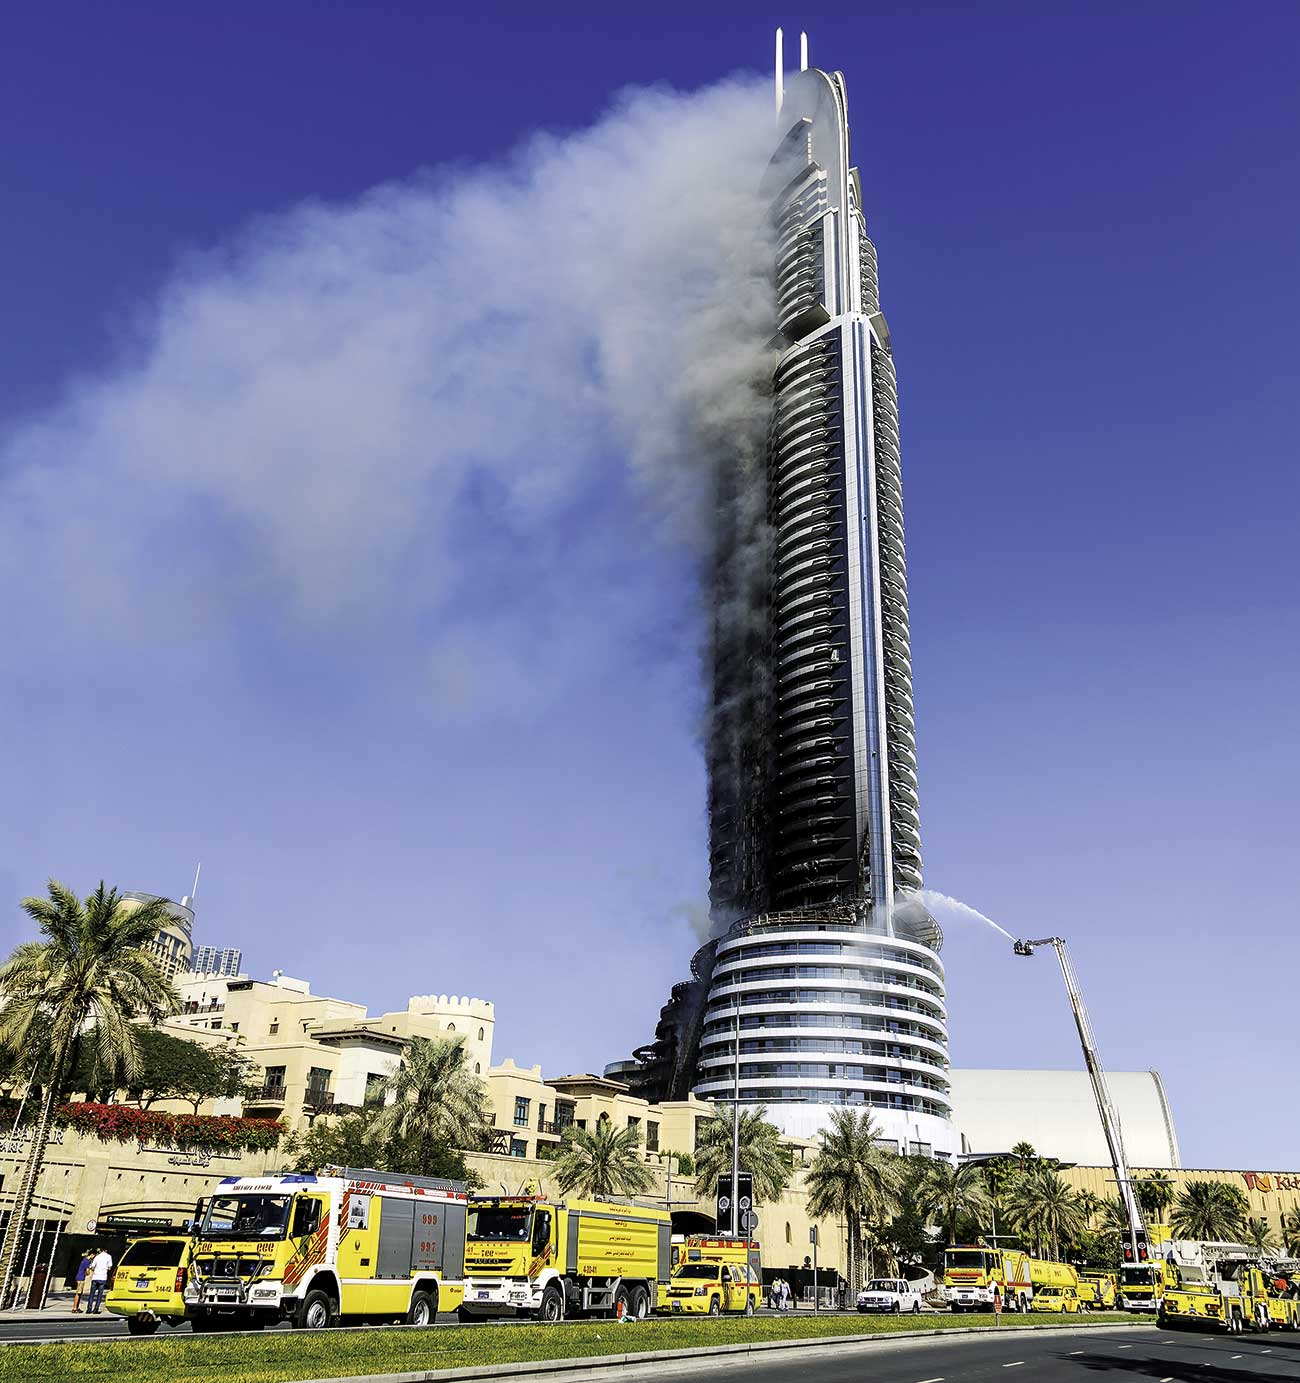 Flammability of high rise facades is currently under increased scrutiny.